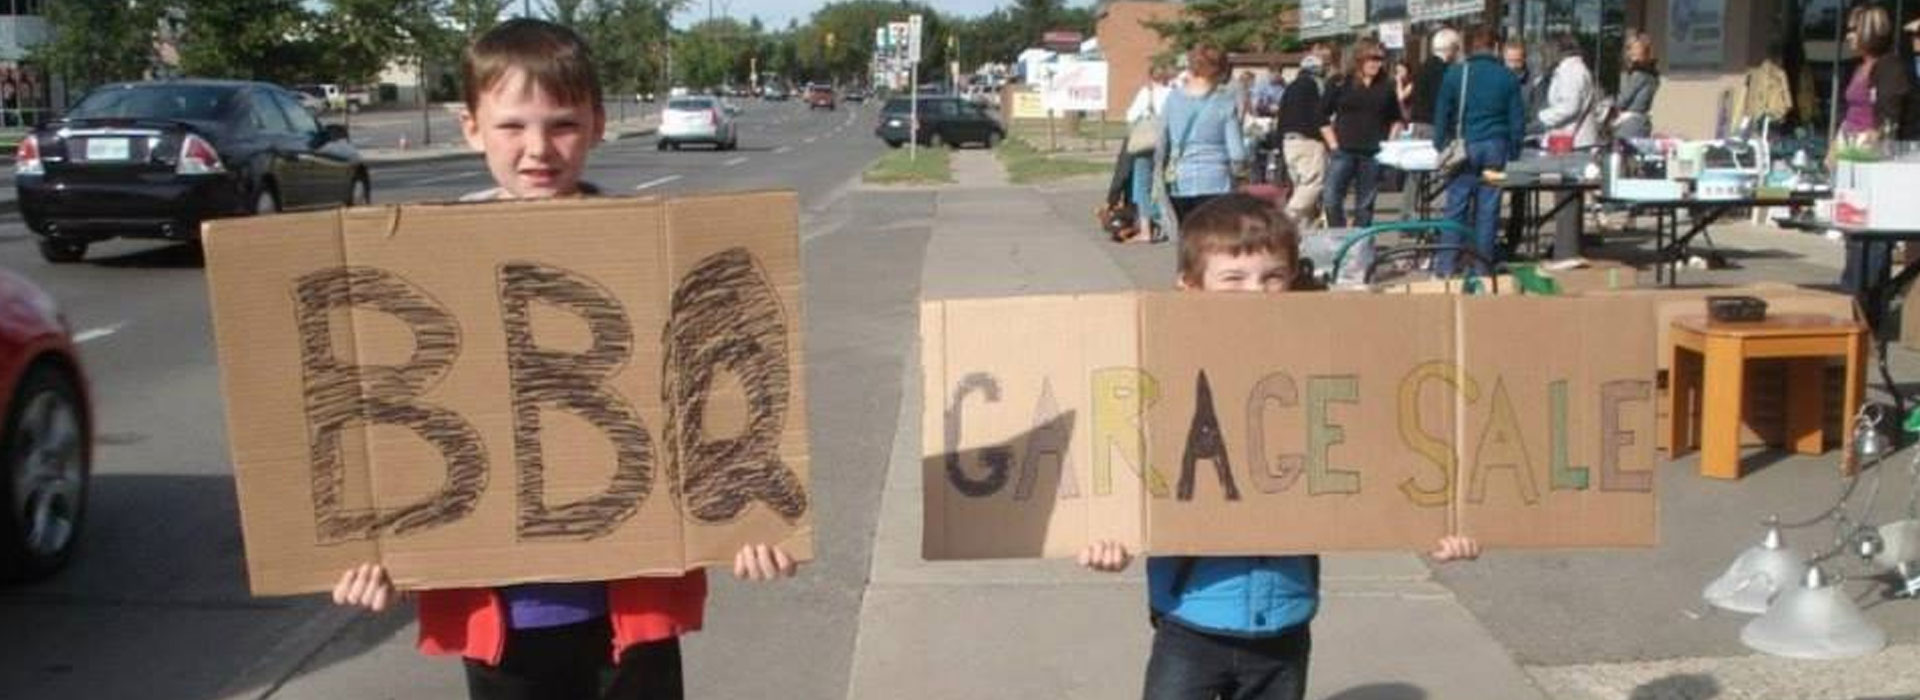 Two young children are holding up cardboard signs written out in crayon advertising the d3h BBQ and Garage Sale Fundraiser while a group of adults are looking over merchandise for sale set out on outdoor kiosks.